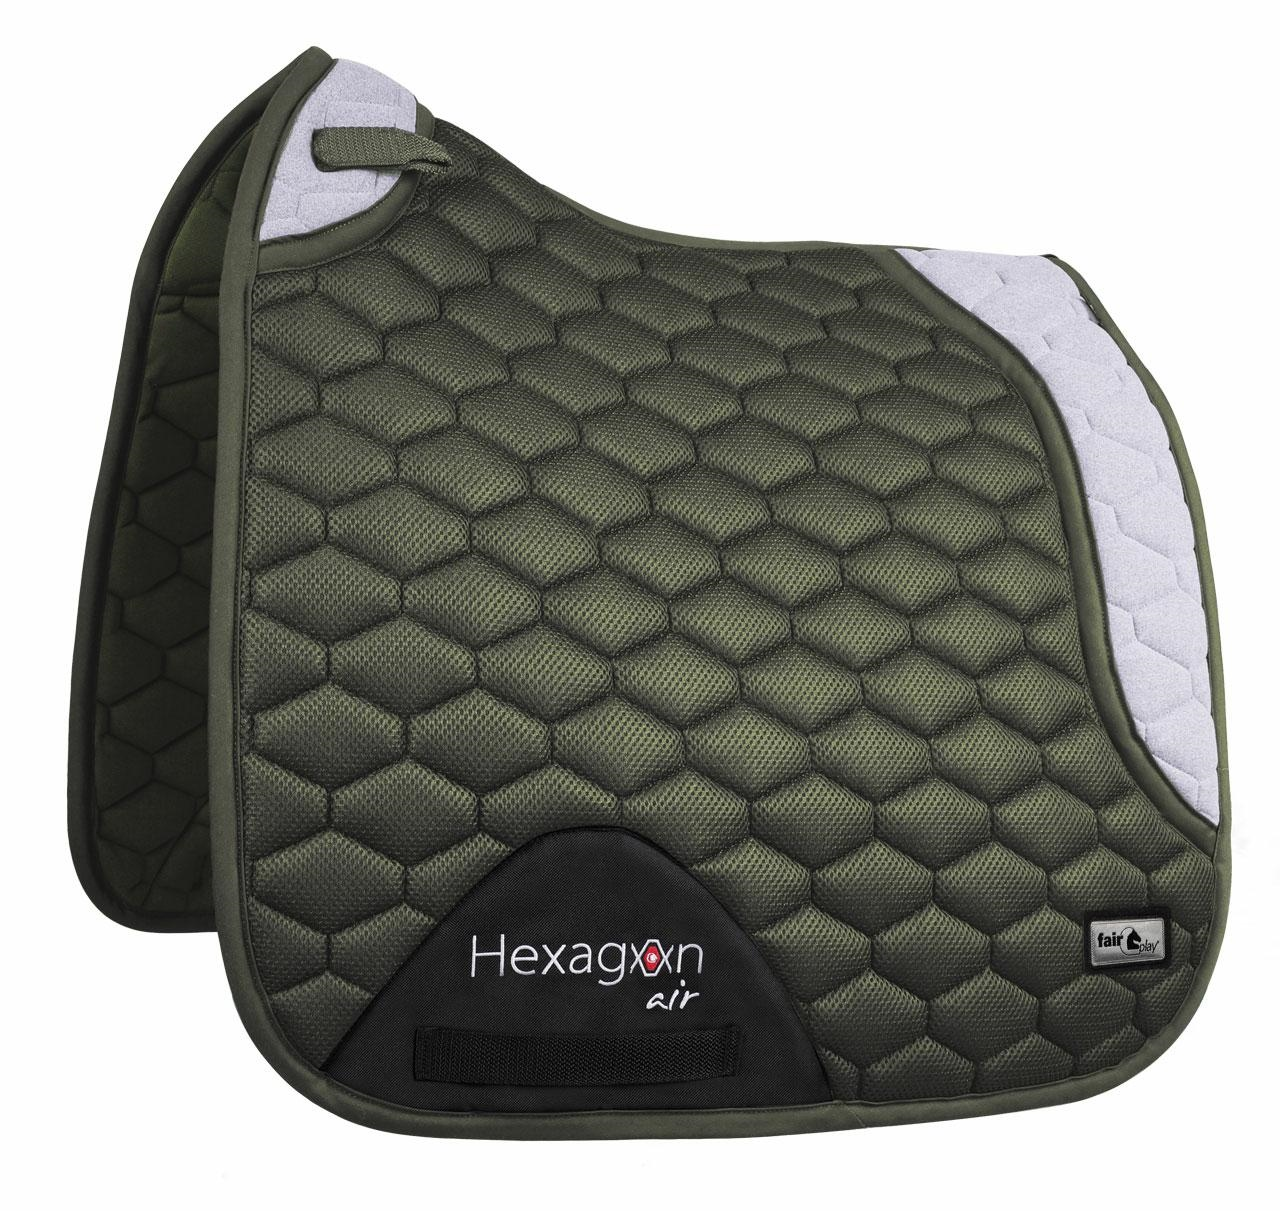 Podsedlová dečka FP Hexagon Air Mesh 3D